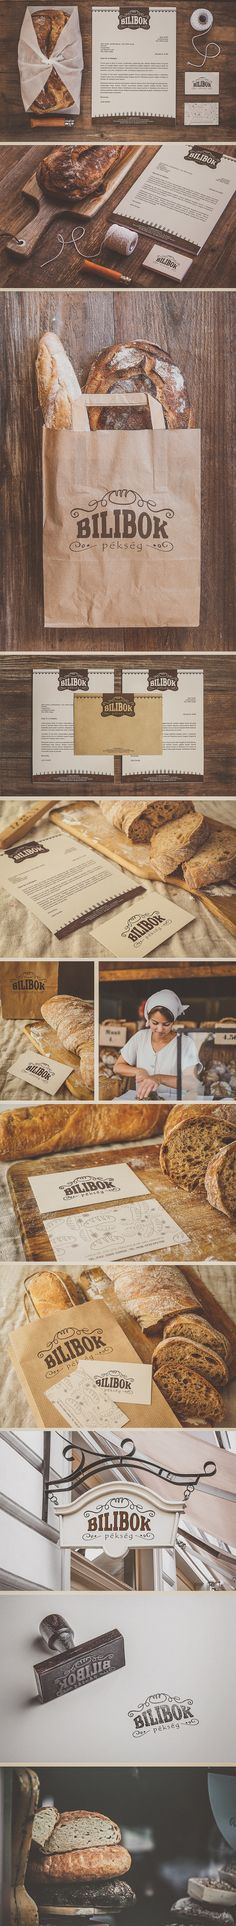 Bilibok Bakery Branding on Behance                                                                                                                                                                                 More